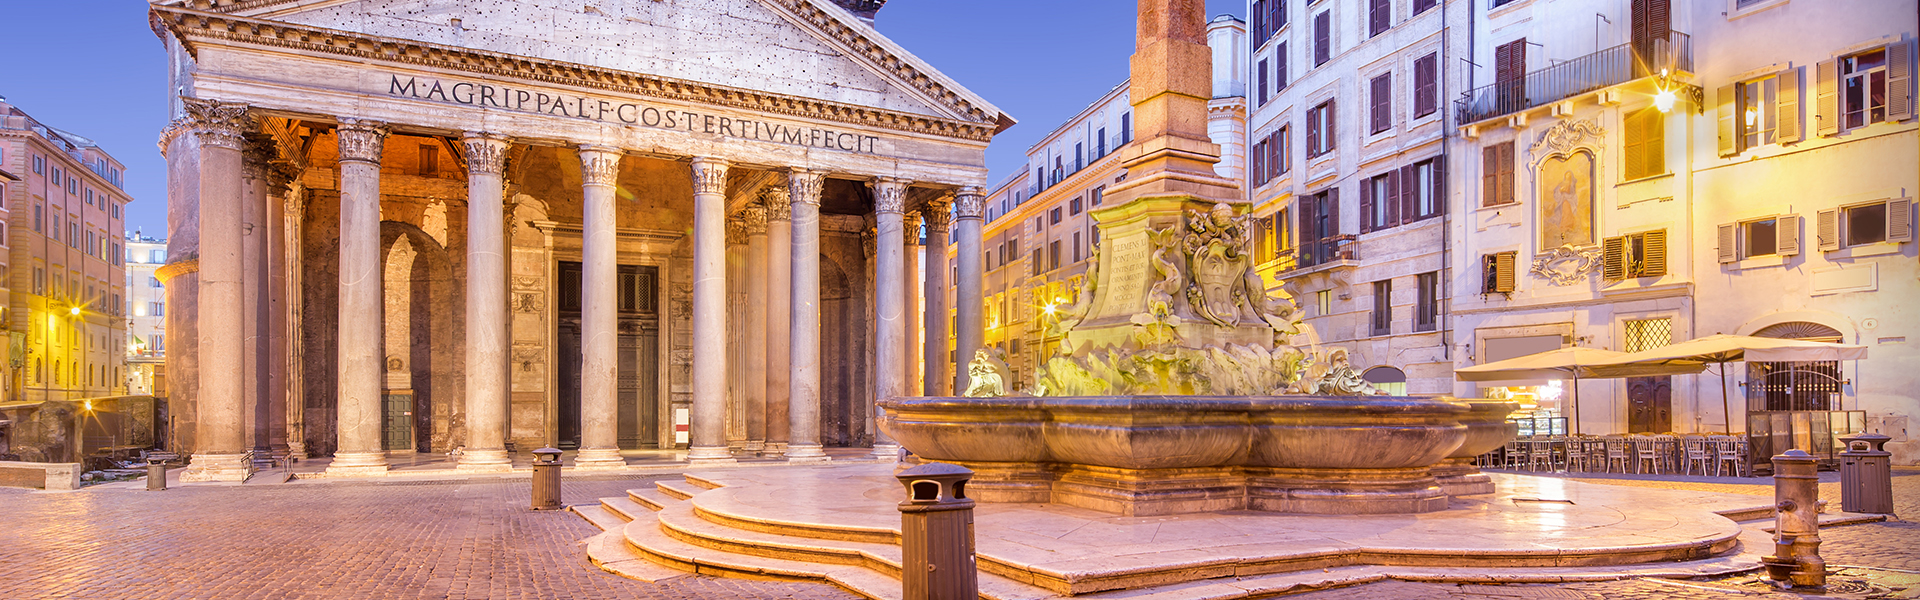 The Pantheon,